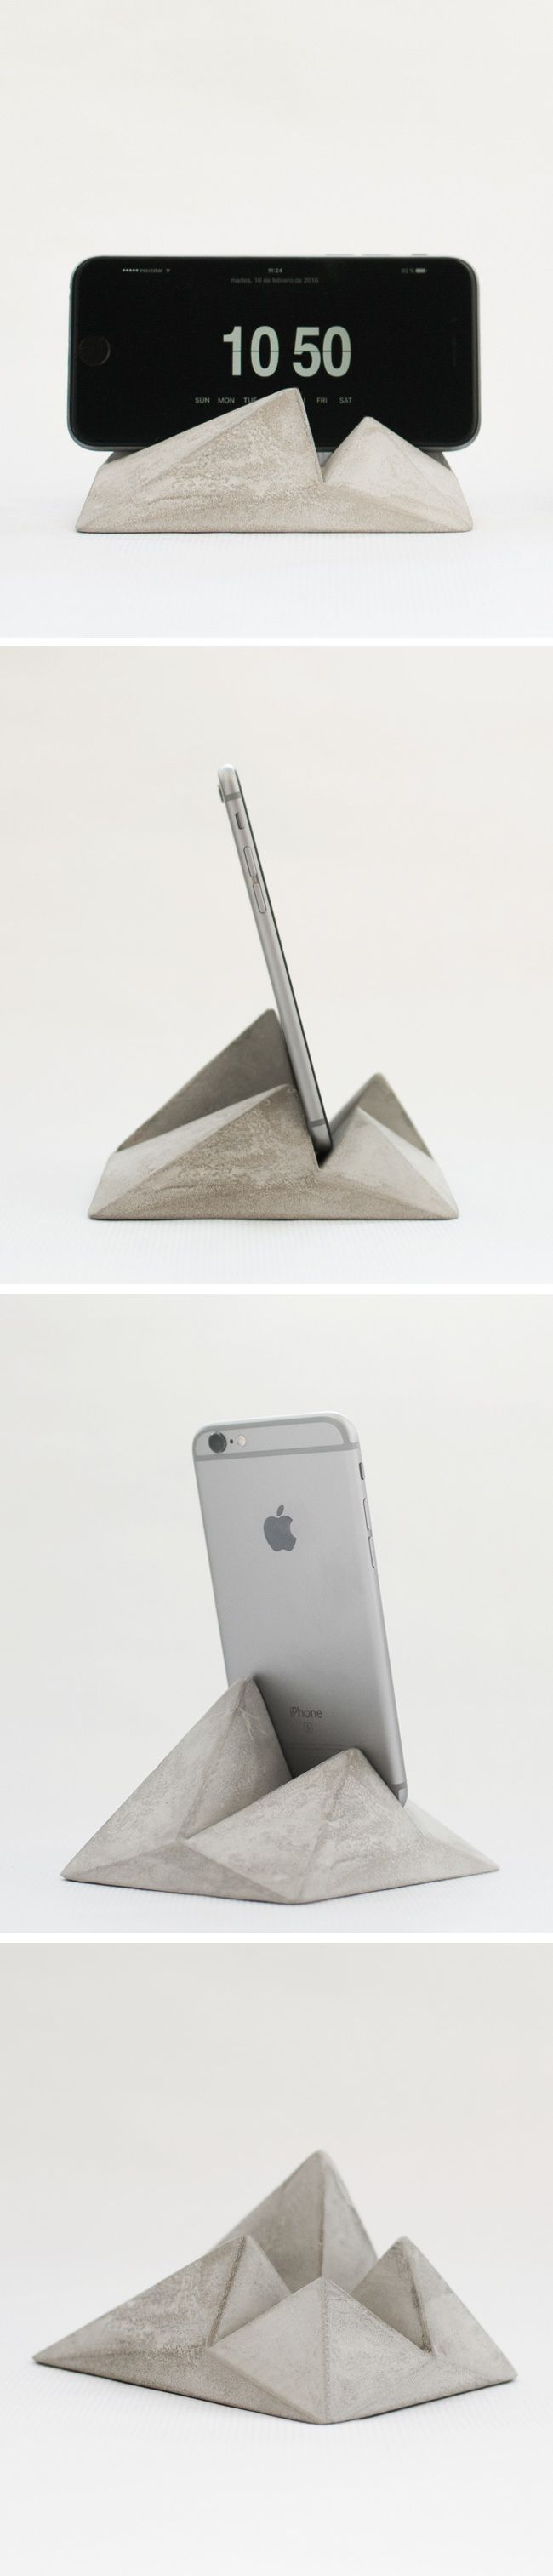 Phone stand by oitenta                                                       …                                                                                                                                                                                 More